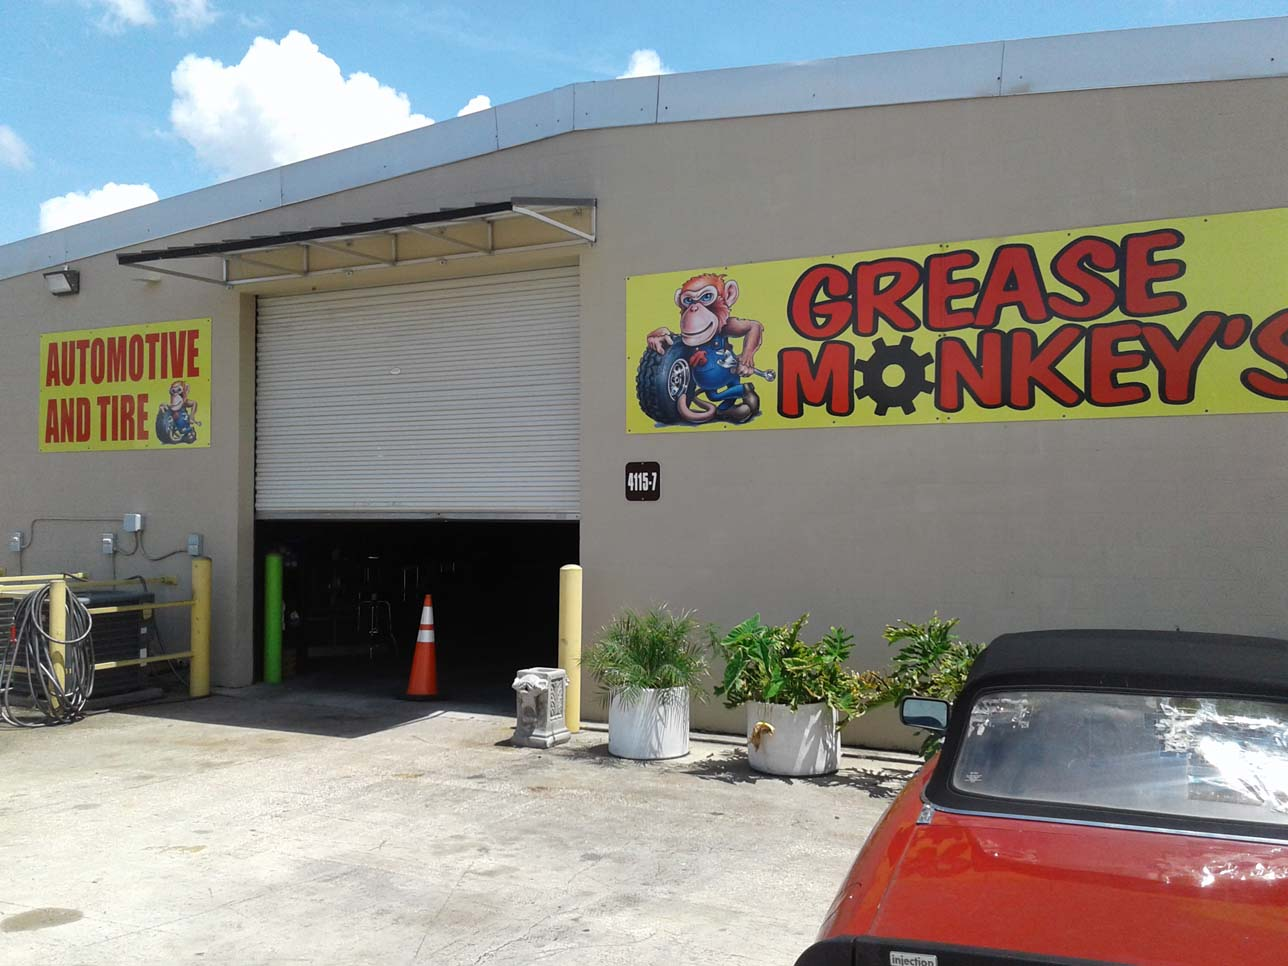 Grease Monkey's